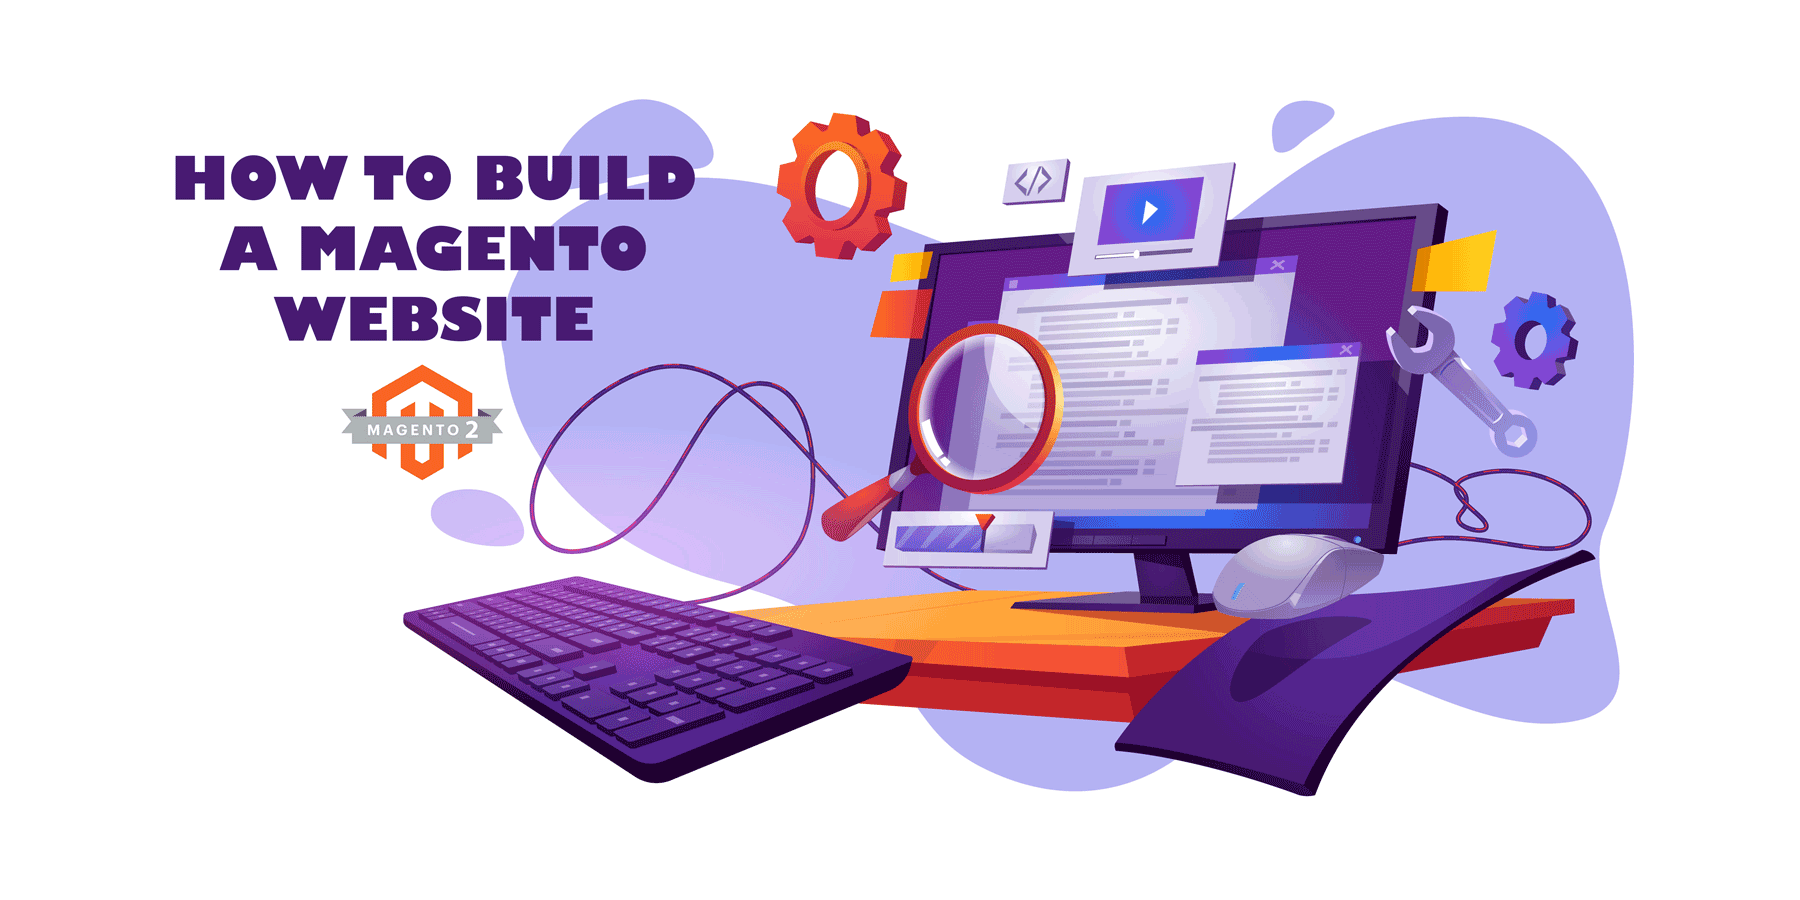 How To Build A Magento Website in 7 Easy Steps (and Launch It for Good!)